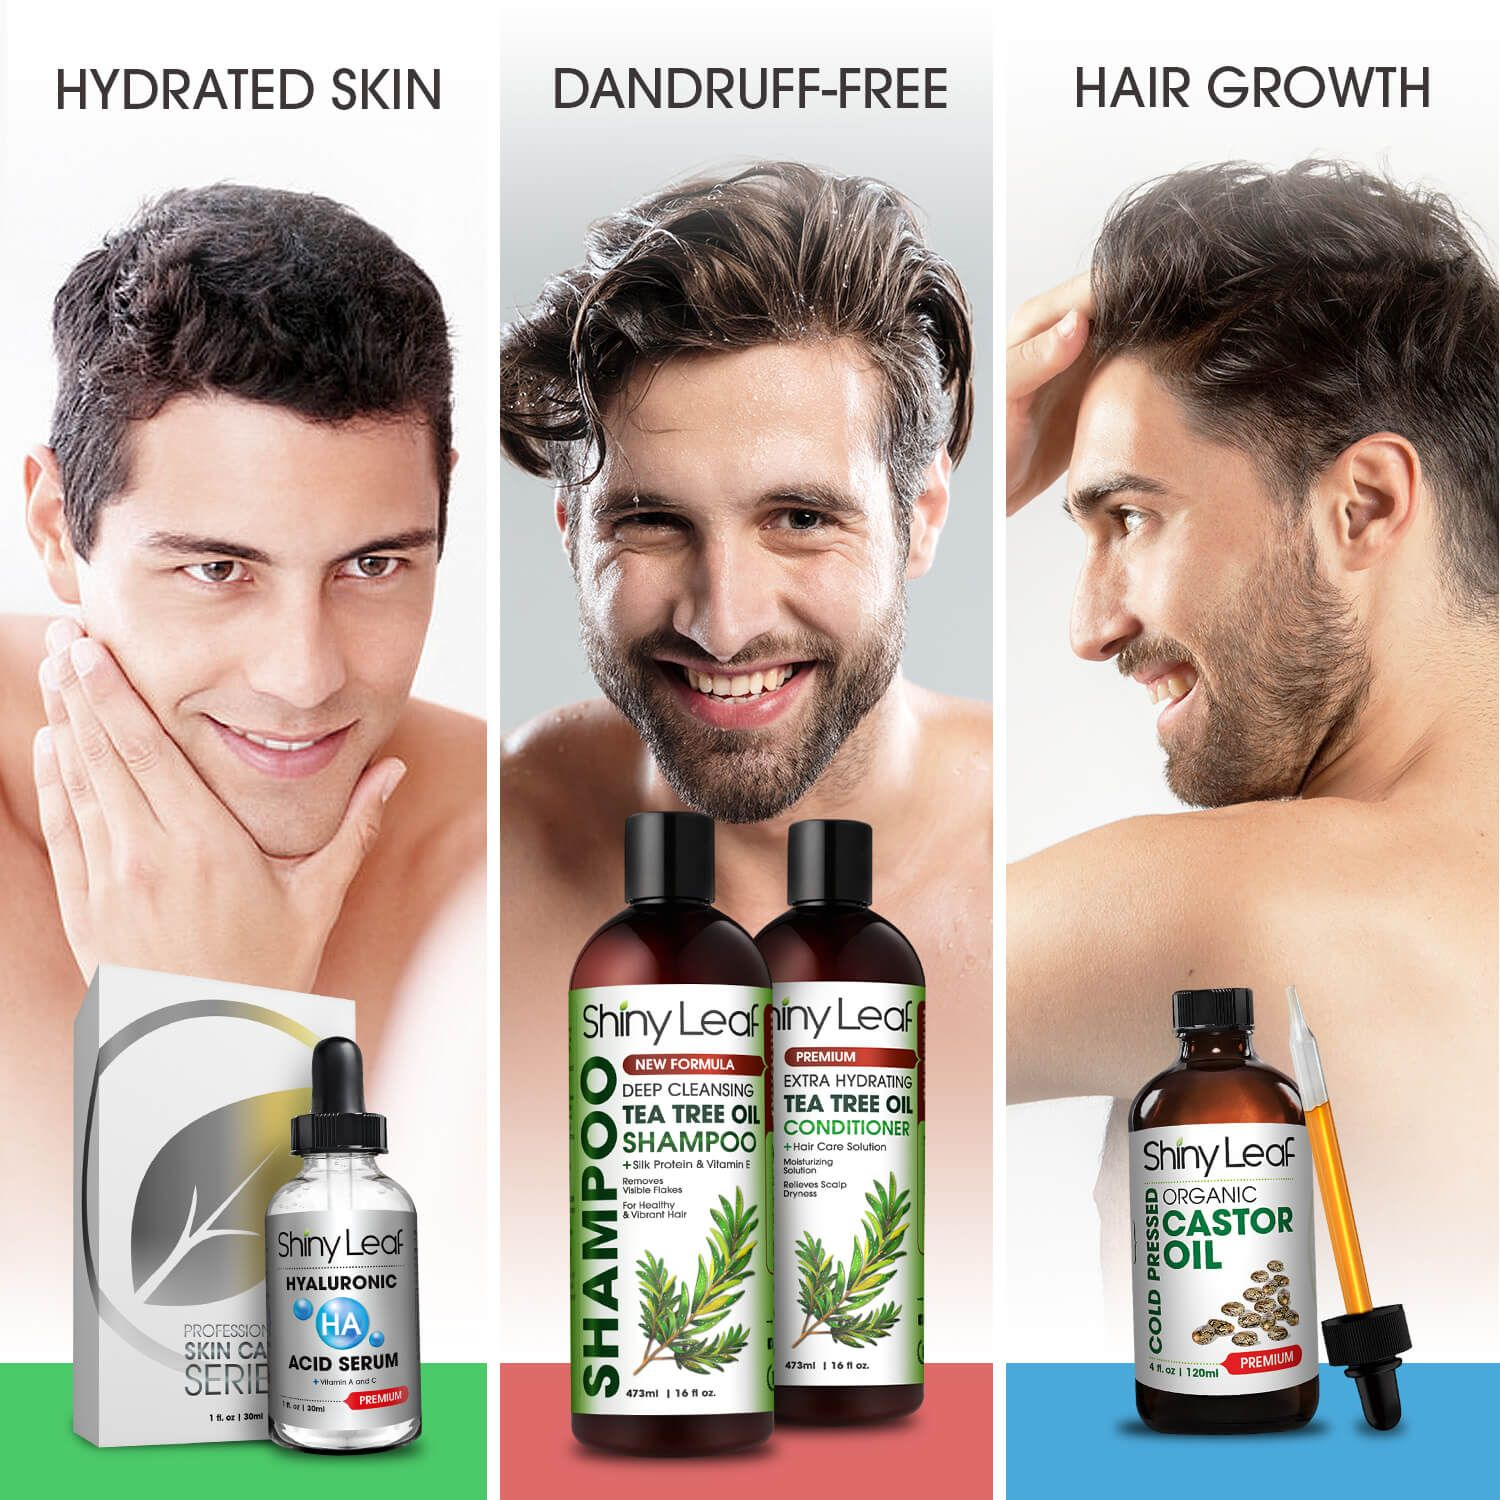 Be Your Own Boss Whatever The Situation Bring Out Your True And Confident Self With Shiny Leaf Hair Care And Skin C Super Hair Growth Dandruff Hydrate Skin